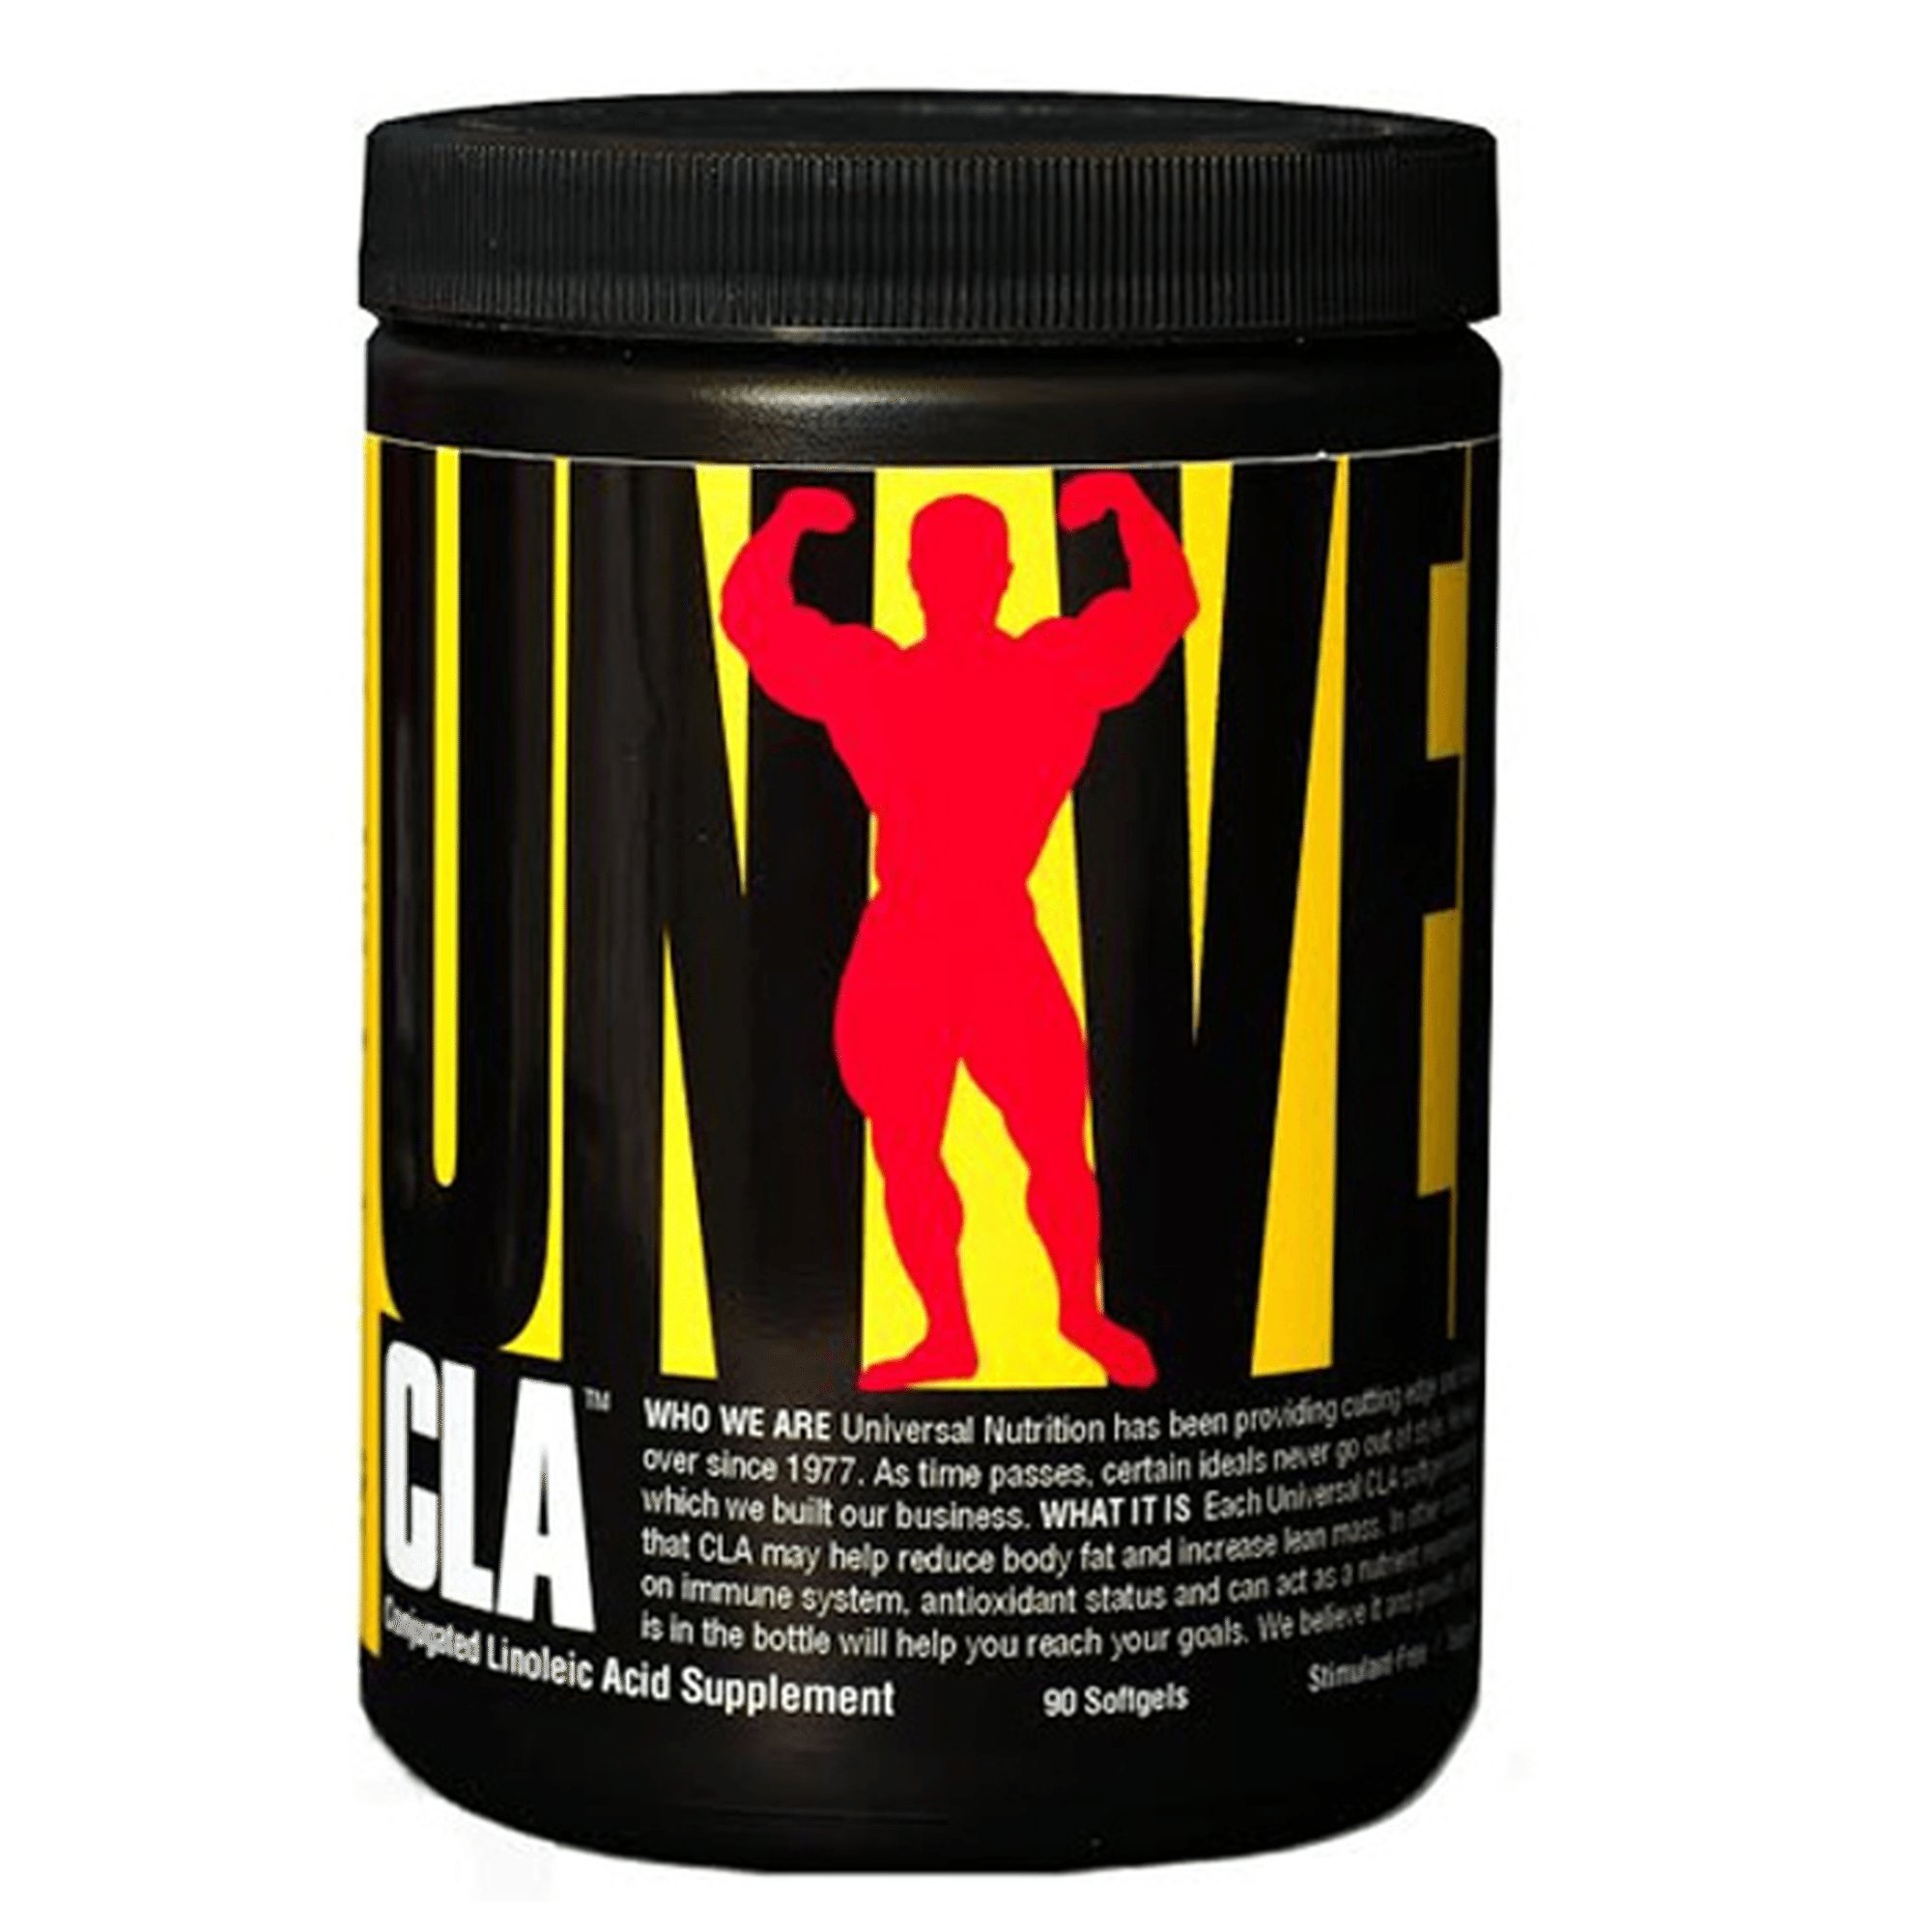 Universal Nutrition CLA Supplement, 0.4 Pound, 6.4 Ounce